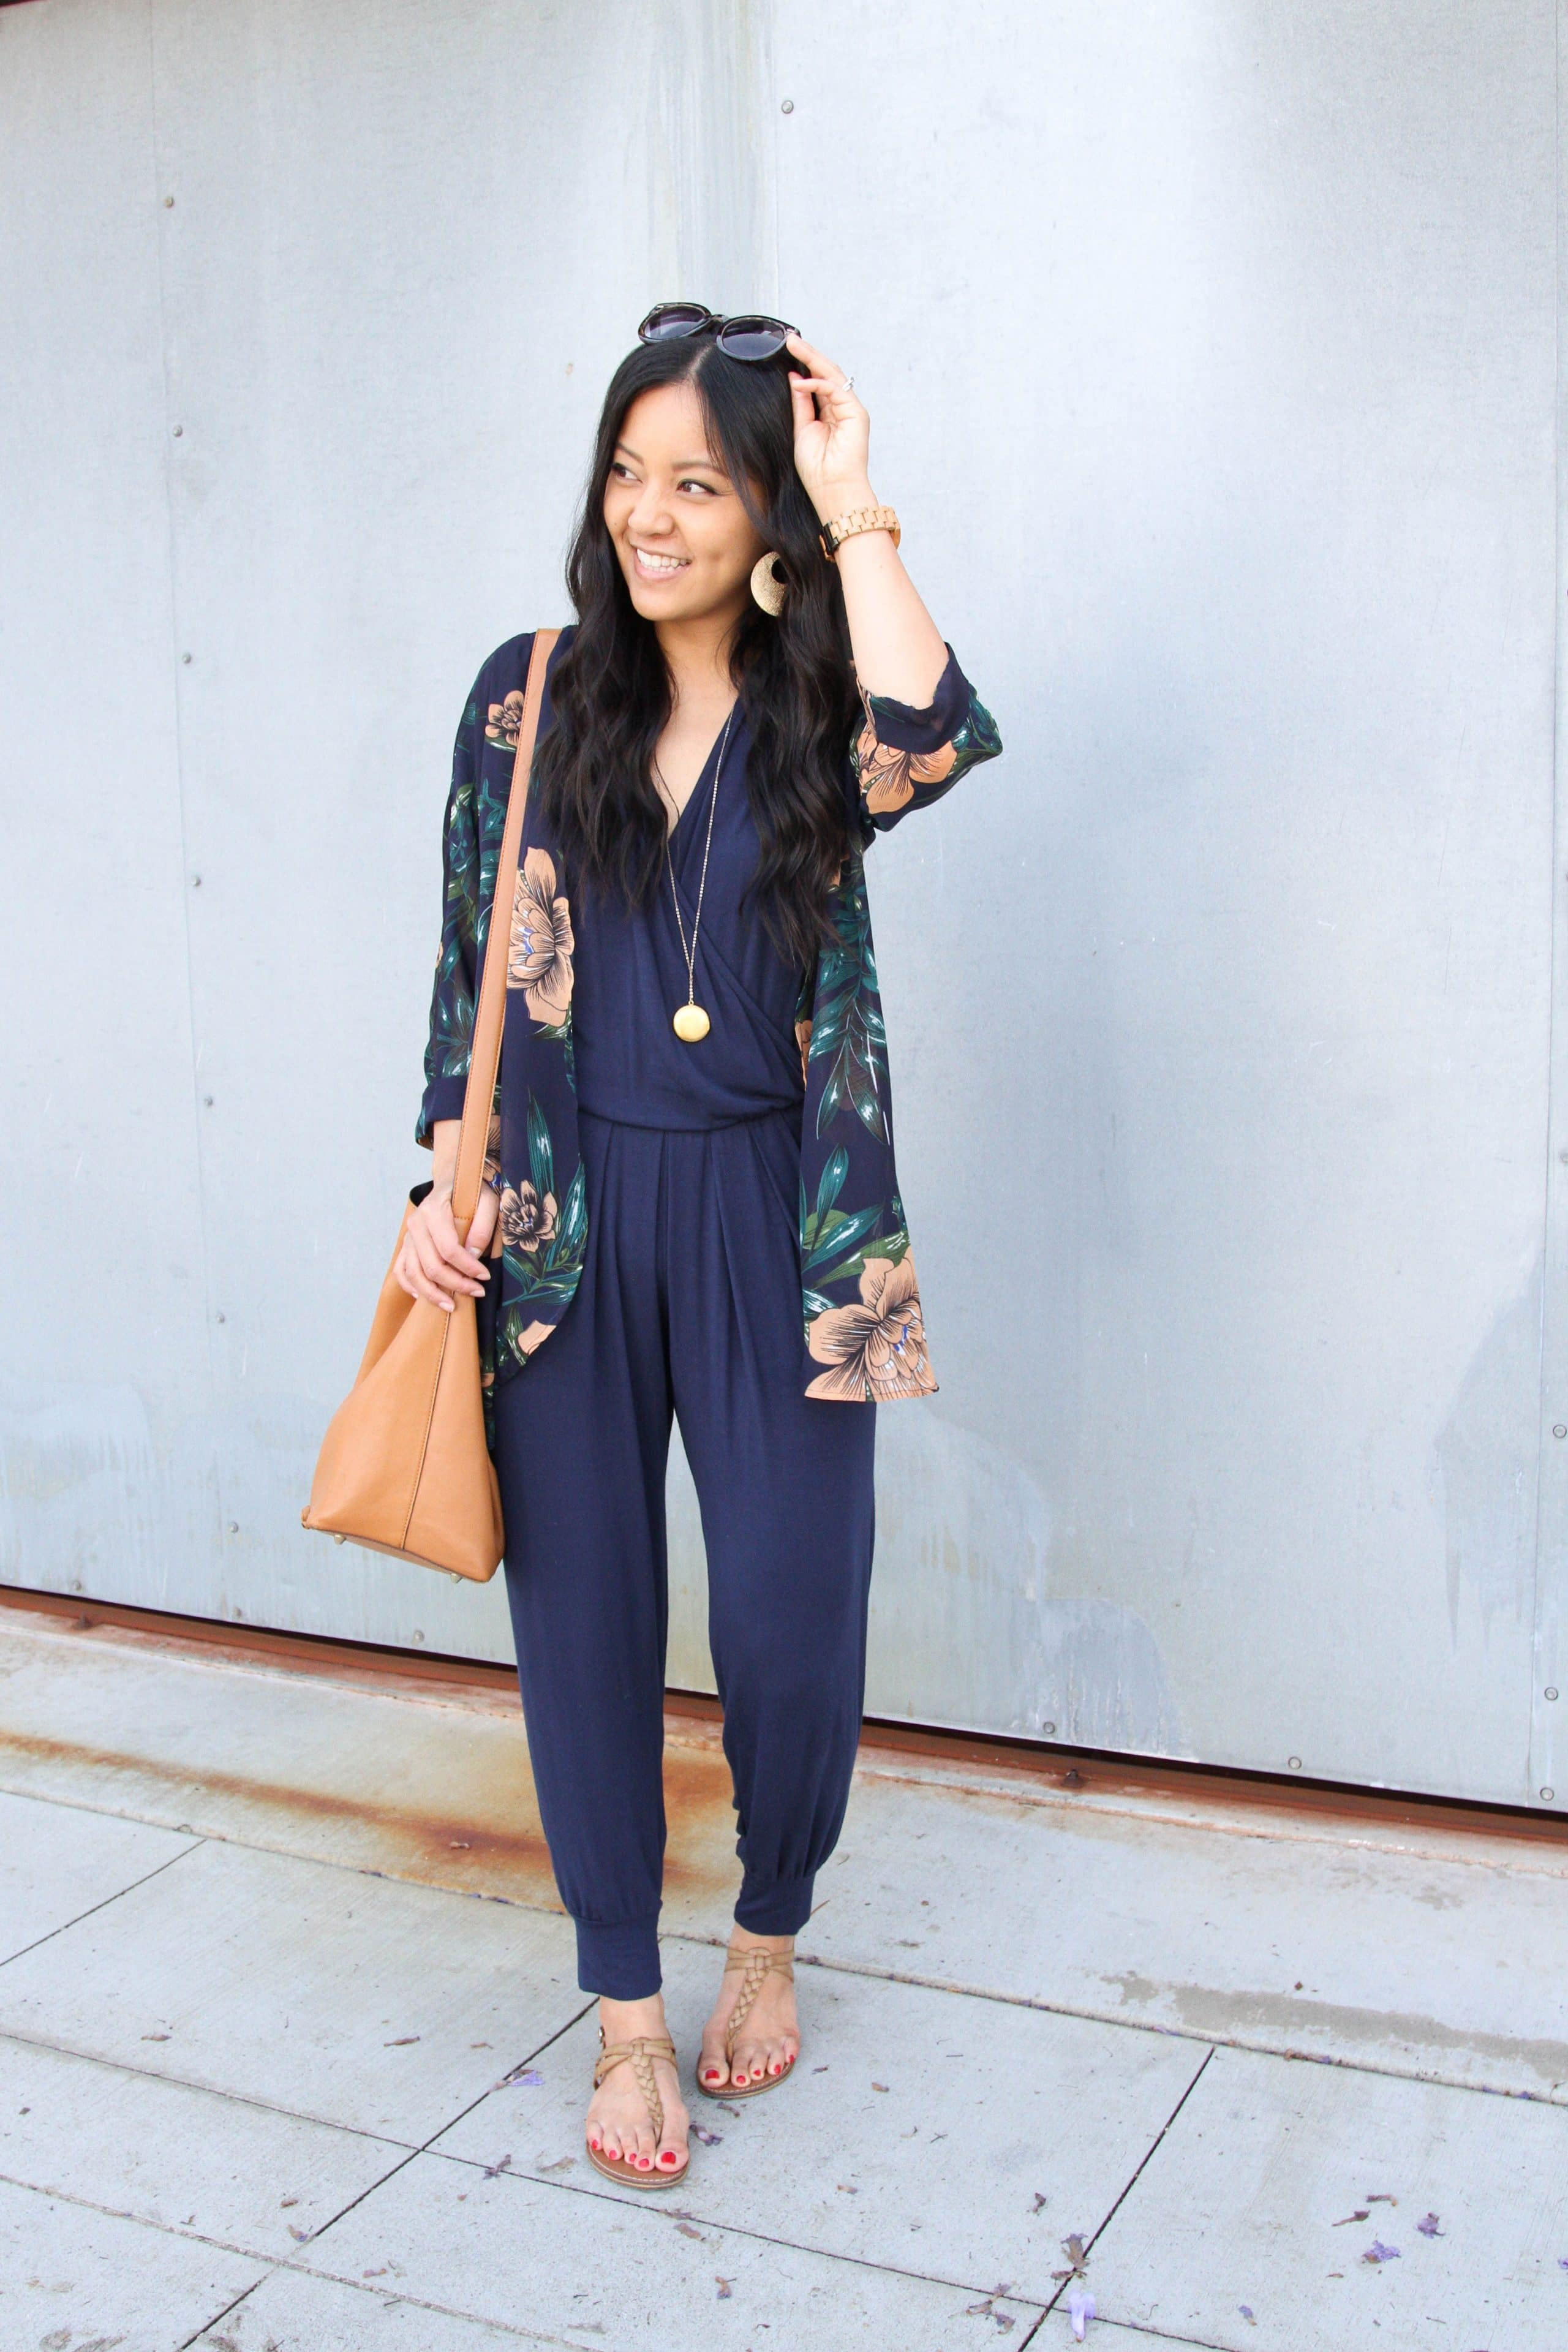 floral wrap + navy jumpsuit + tan sandals + long pendant necklace